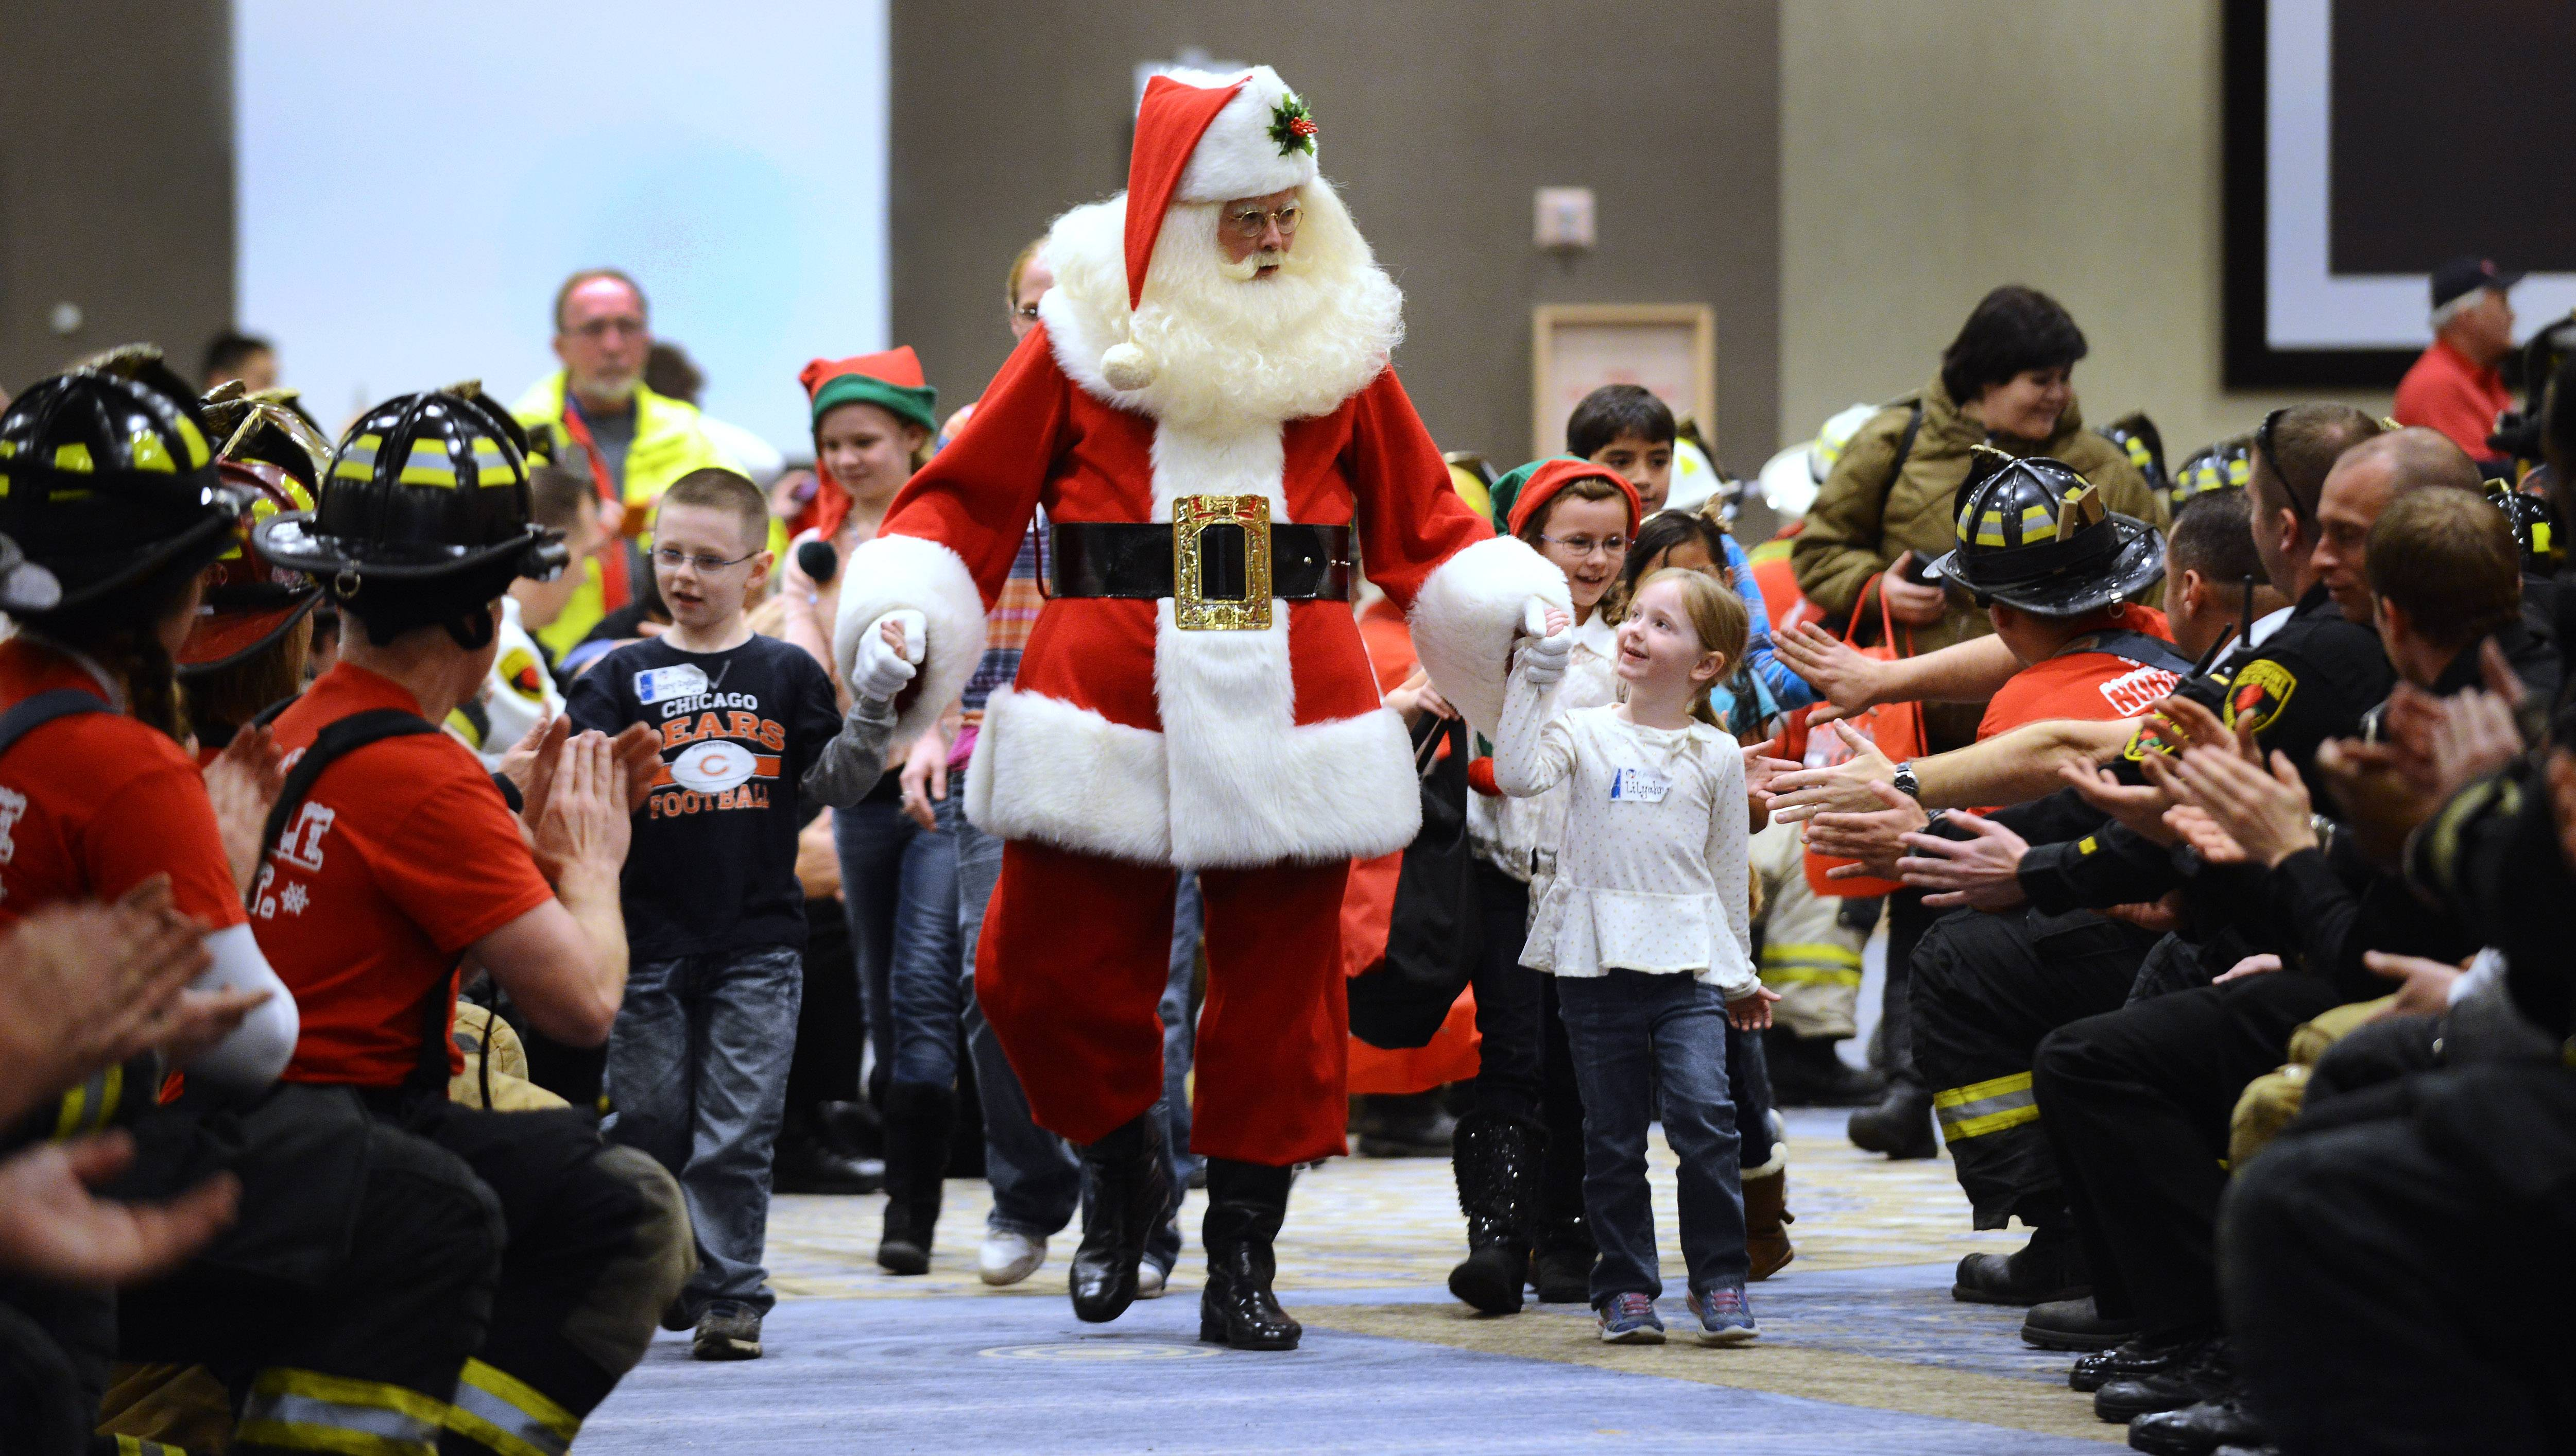 Members of the Rosemont fire and police departments greet Santa and the children as they arrive at the Stephens Convention Center as part of Operation North Pole, an event for children with life-threatening illnesses Saturday.